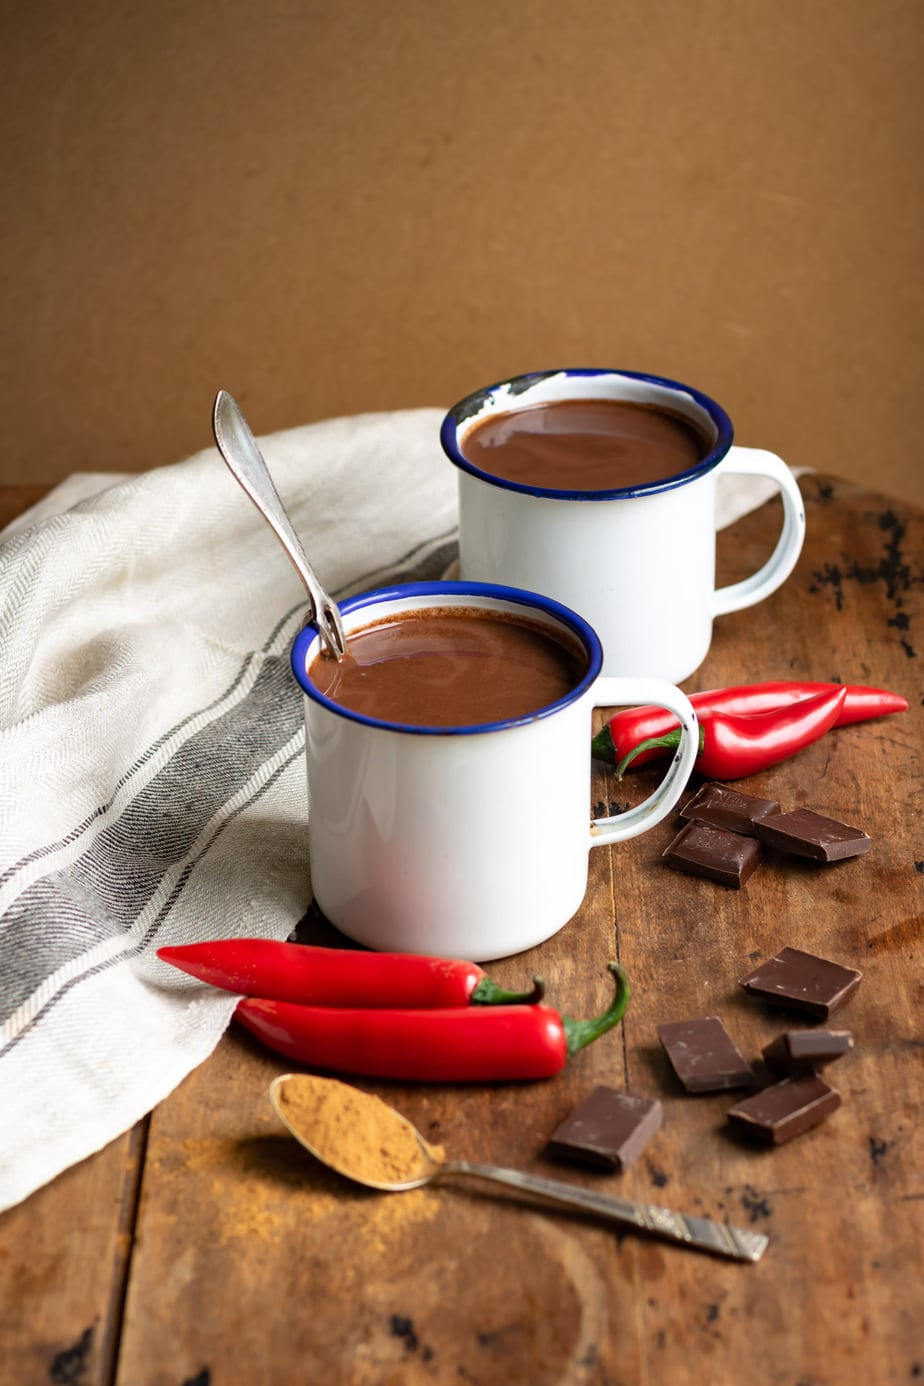 Wooden table with mugs of xocolatl, chili, cinnamon and chocolate.